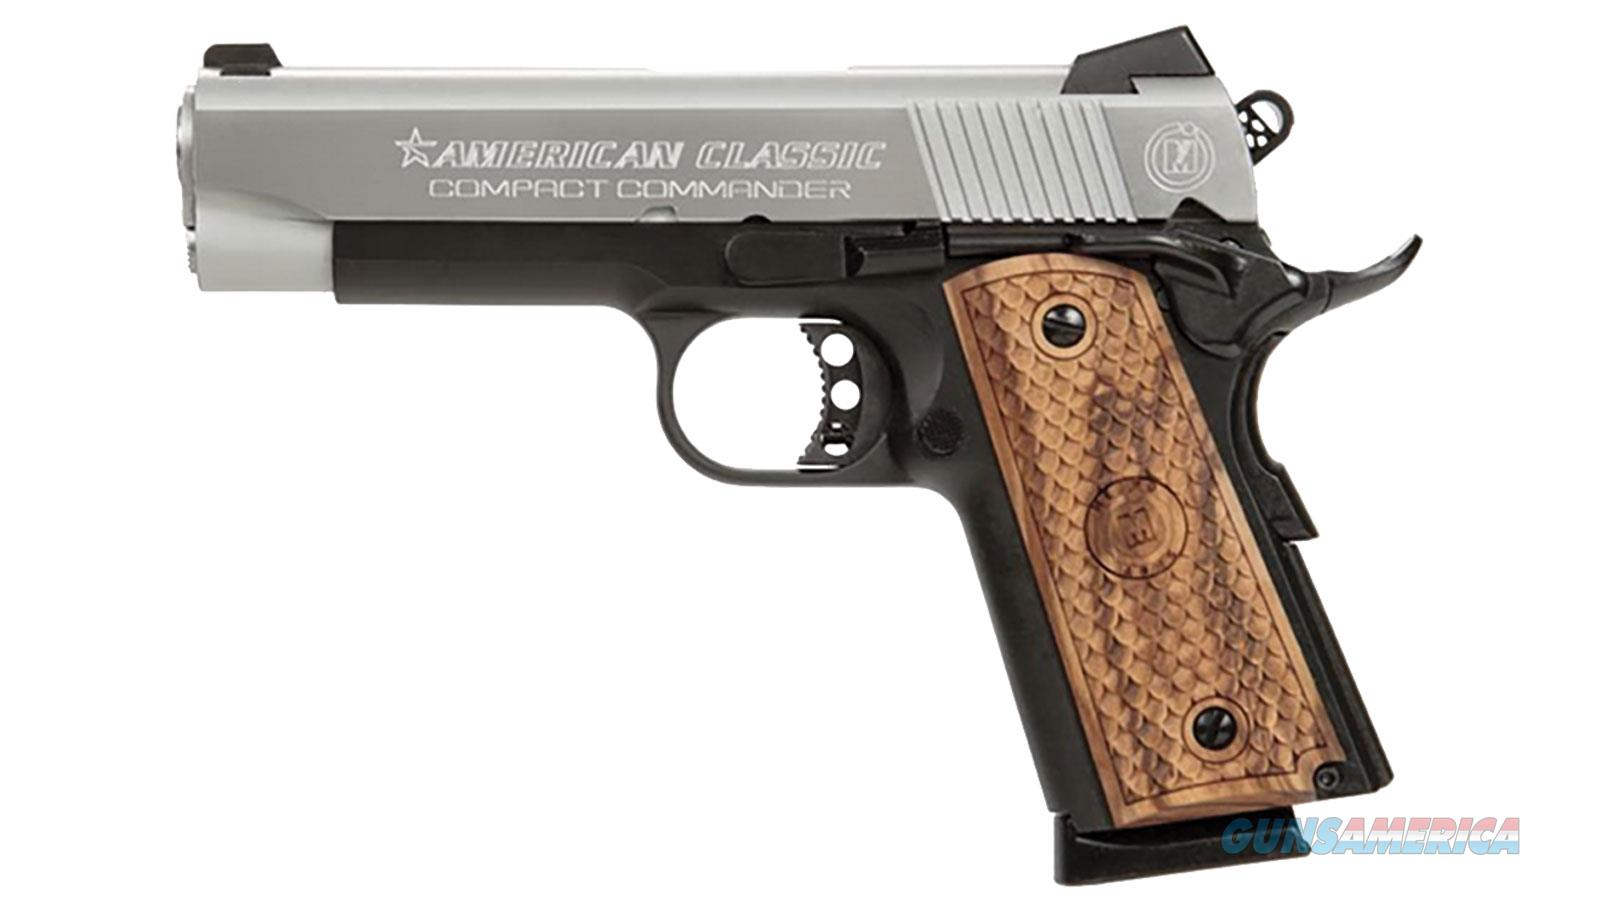 EAGLE IMPORTS/BERSA AC COMPACT COMMANDER 45ACP DUO TONE 7RD ACCC45DT  Guns > Pistols > Desert Eagle/IMI Pistols > Other